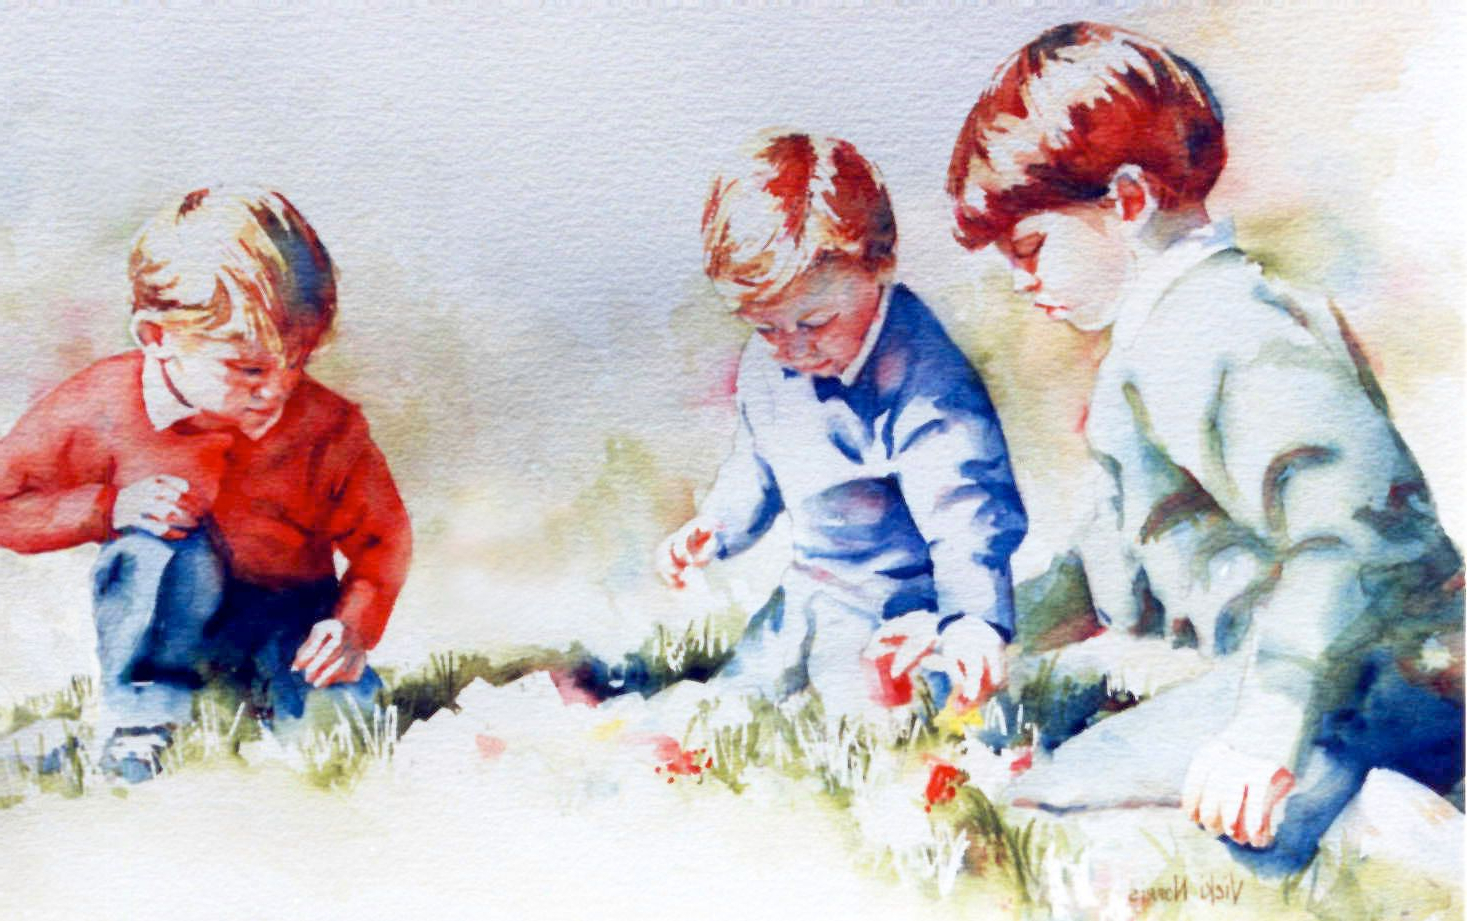 1467x921 Watercolor Paintings Of People Watercolor Portrait Of 3 People In